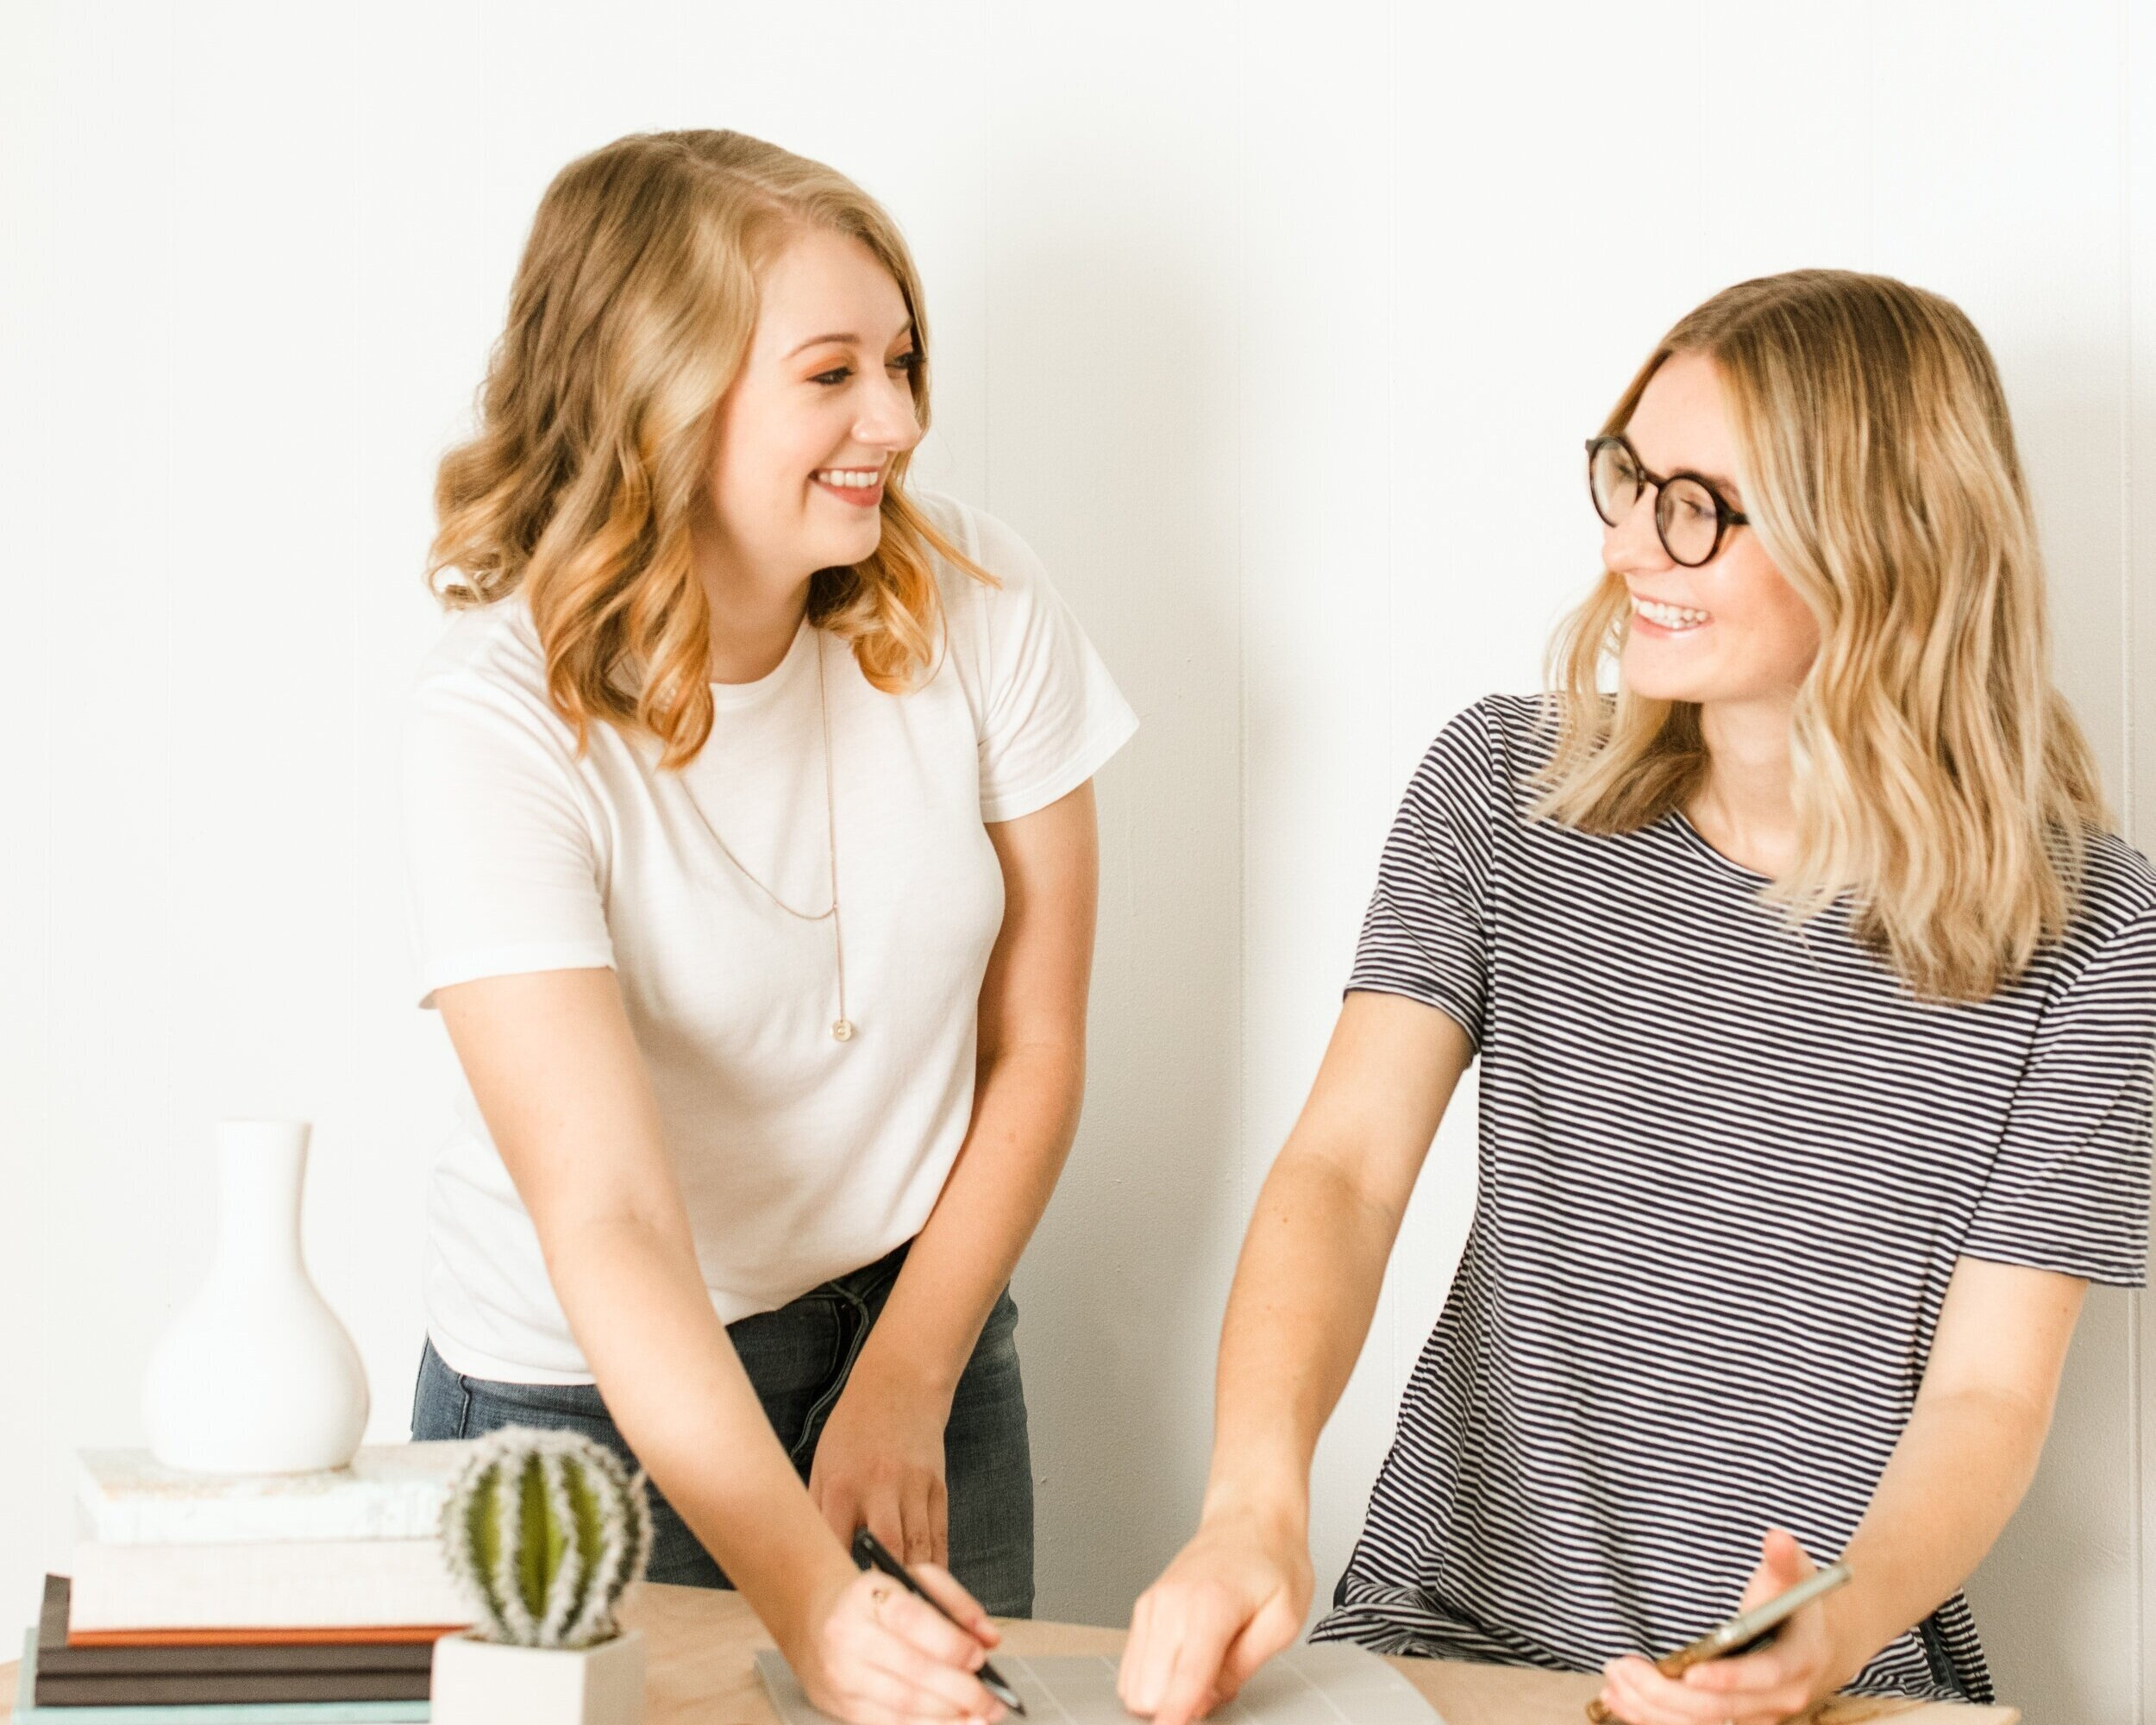 """Hello There! - We're Cassidy and Amanda, the co-founders and creatives behind Foxtrot Branding. When we met each other, we realized that Amanda's design style and entrepreneurial ideas perfectly compliment Cassidy's photography and web design background, and so we merged our services to create Foxtrot Branding. When it comes to business, we value thoughtfully designed brands that turn your prospects into paying customers. We don't just design """"pretty things"""" — we believe in having a problem-solving mindset when creating strategically branded visuals for your business. Are you wanting to change the perception of your brand to one that is reliable, professional, and reaches your dream customers? Are you hoping to upgrade your prices and offerings but need a refined look to reflect the new you? We know how to help you reach those goals with our skills in Brand Identity Design, Website Design, and Brand Photography. Whether you're ready to invest in one of our services or several, we are here to meet you where you're at in your business and lead you to where you want to be."""